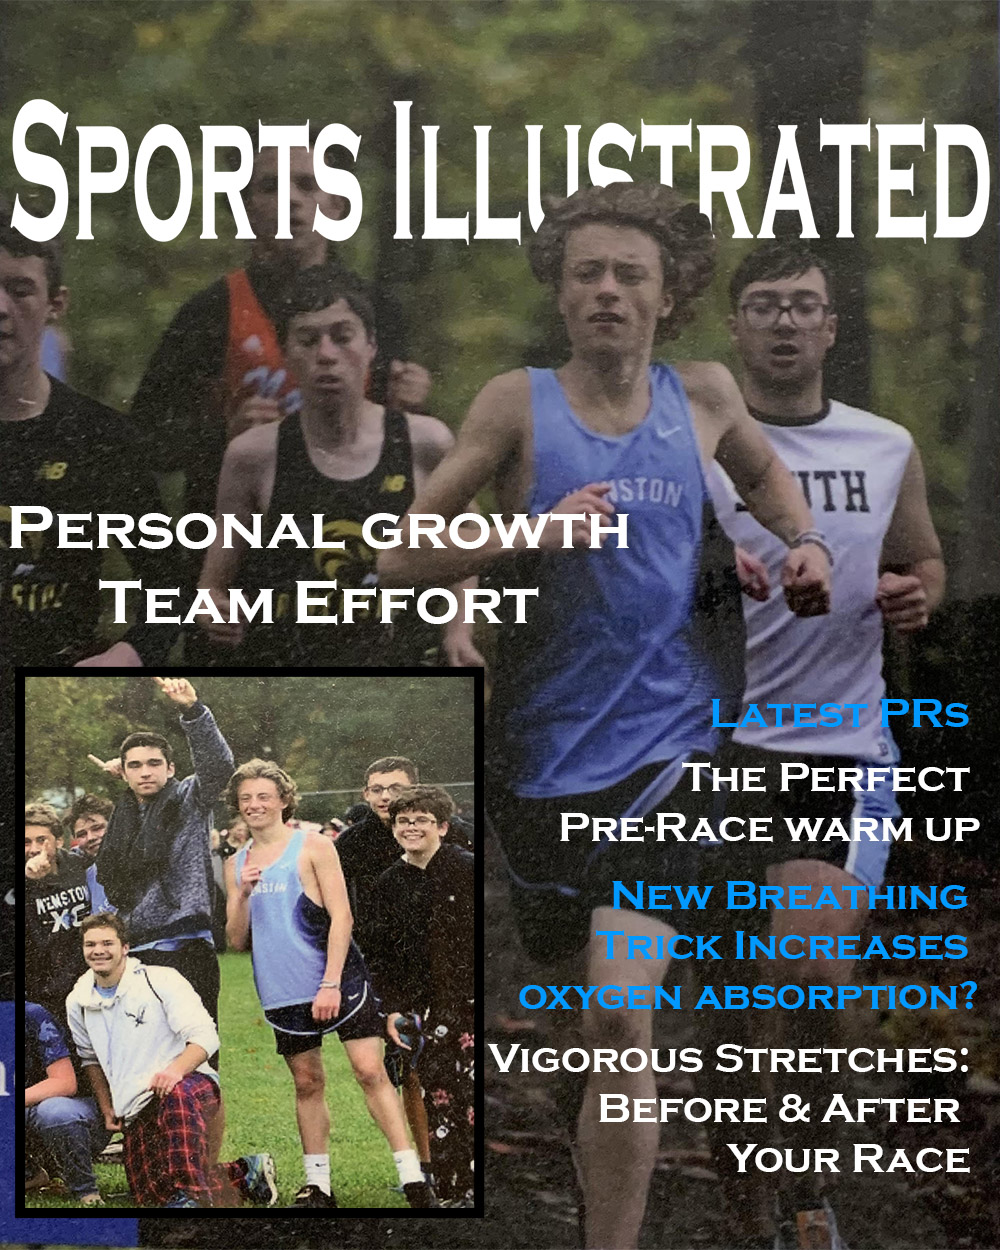 Sports Illustrated cover of Cross Country meet 2019